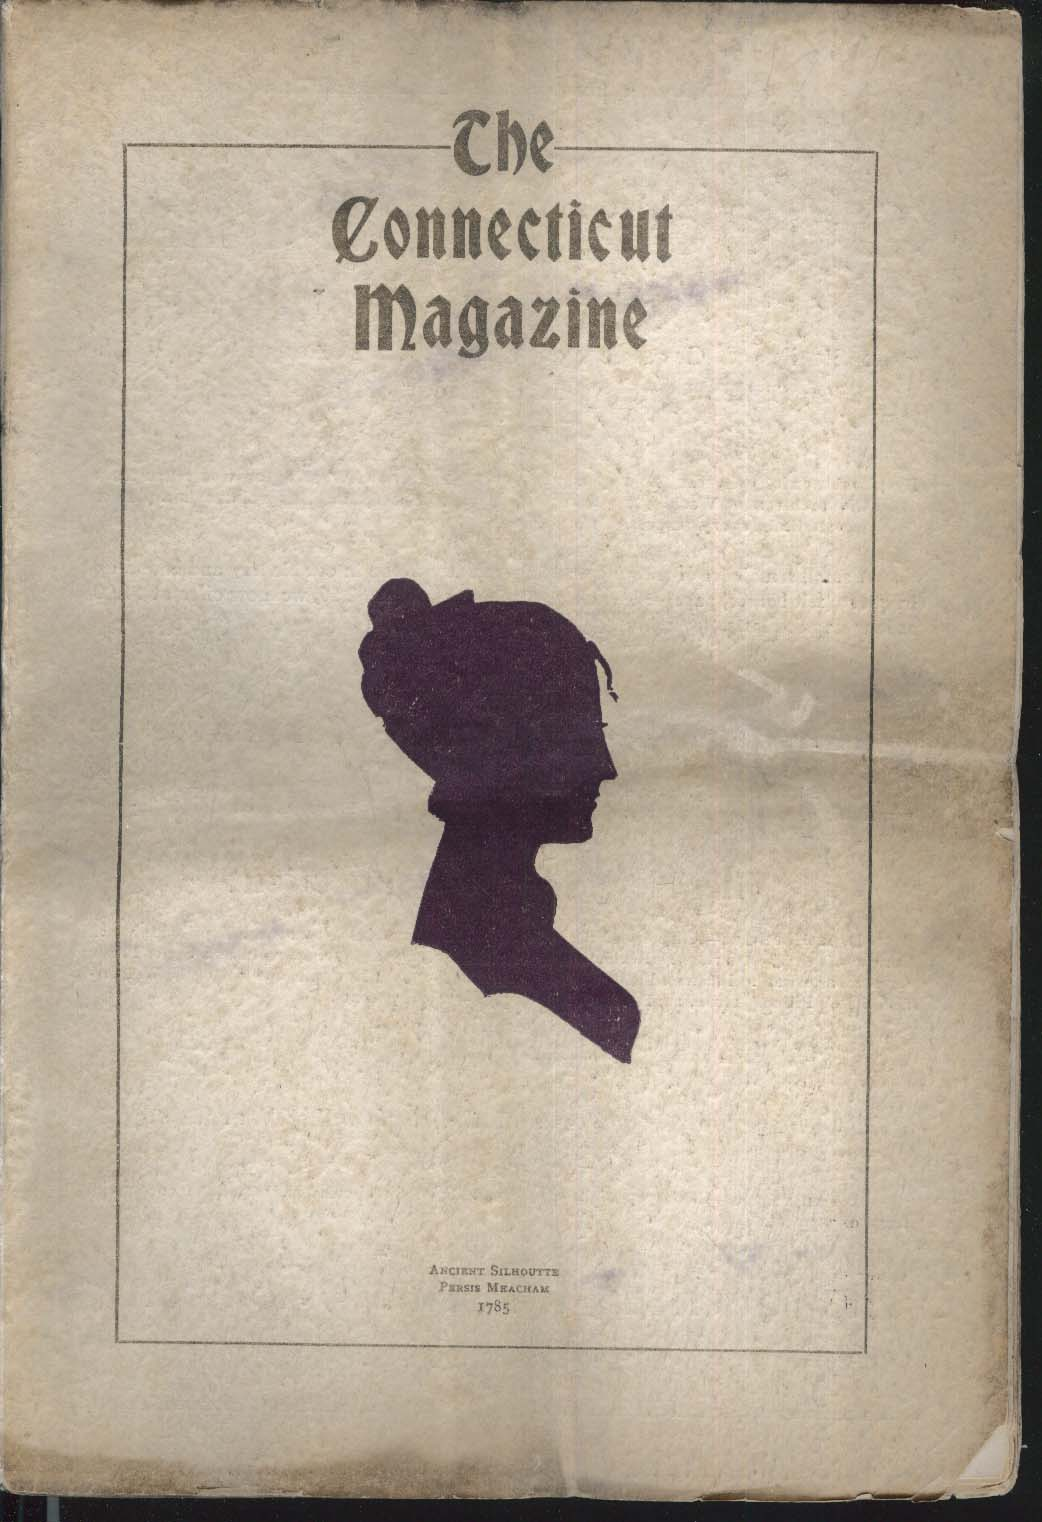 CONNECTICUT MAGAZINE Mary Wright Alsop Elihu Burritt 1906